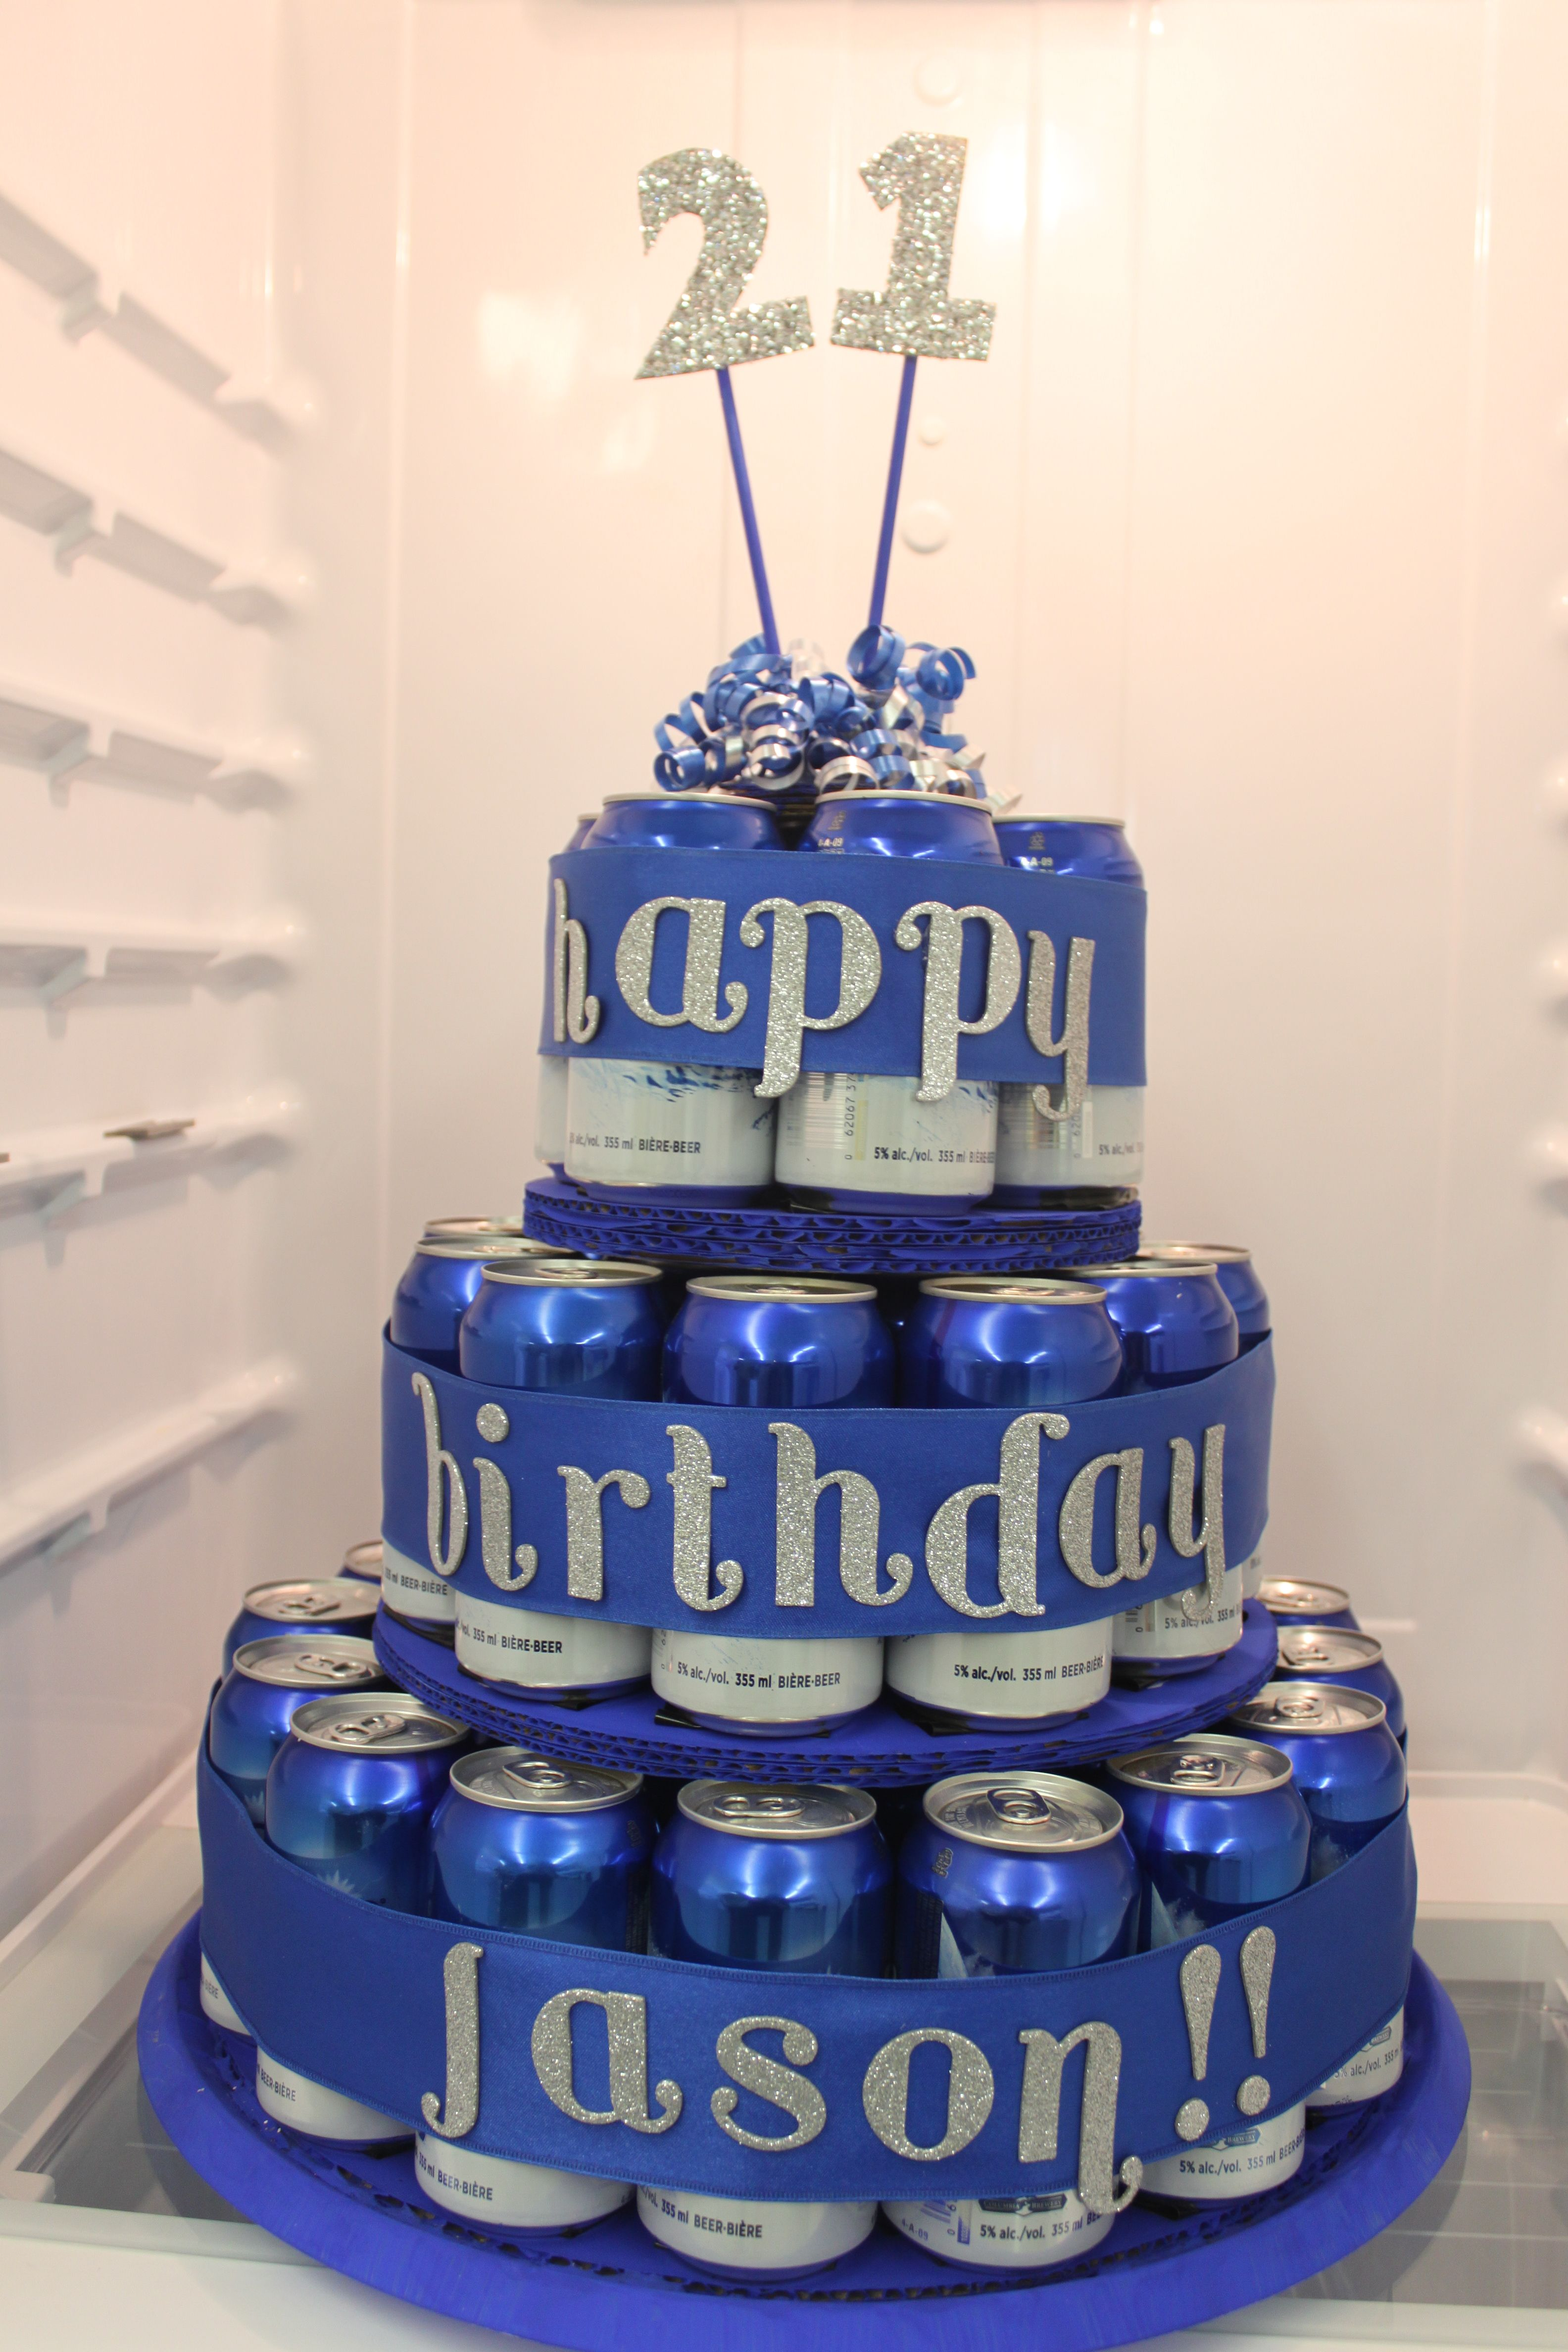 How to Make a Beer Can Cake by CraftedNichecom 4 simple steps